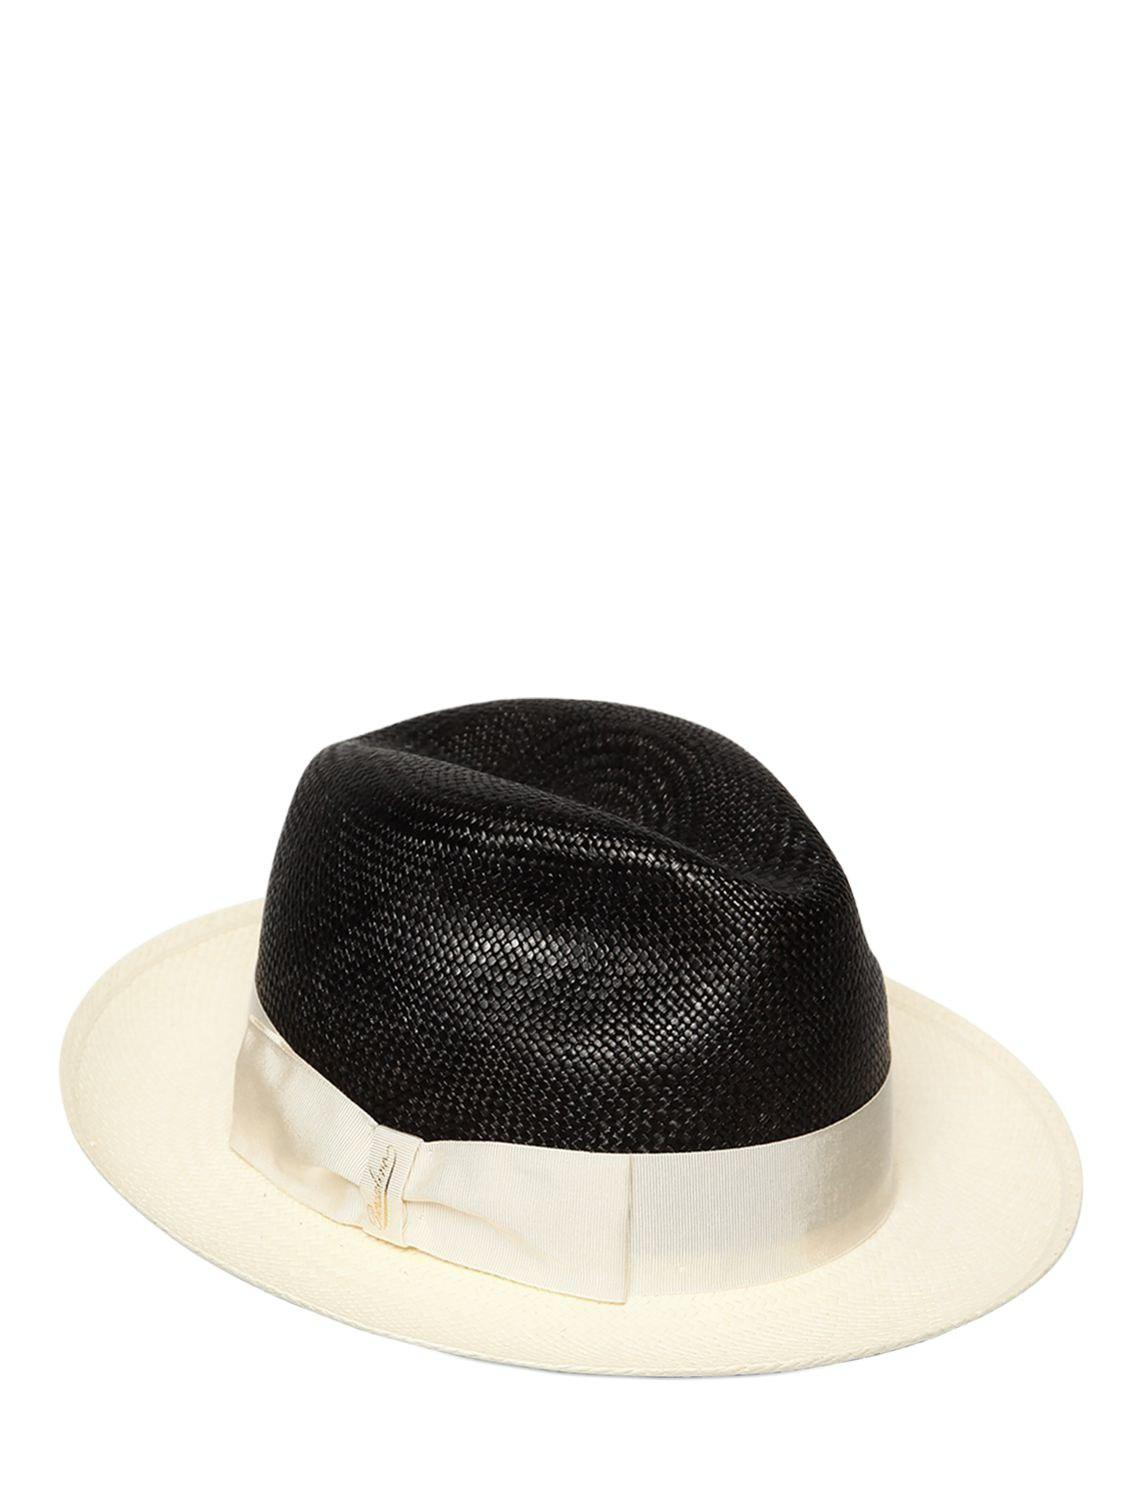 Black and beige straw hat Borsalino 9v0k3